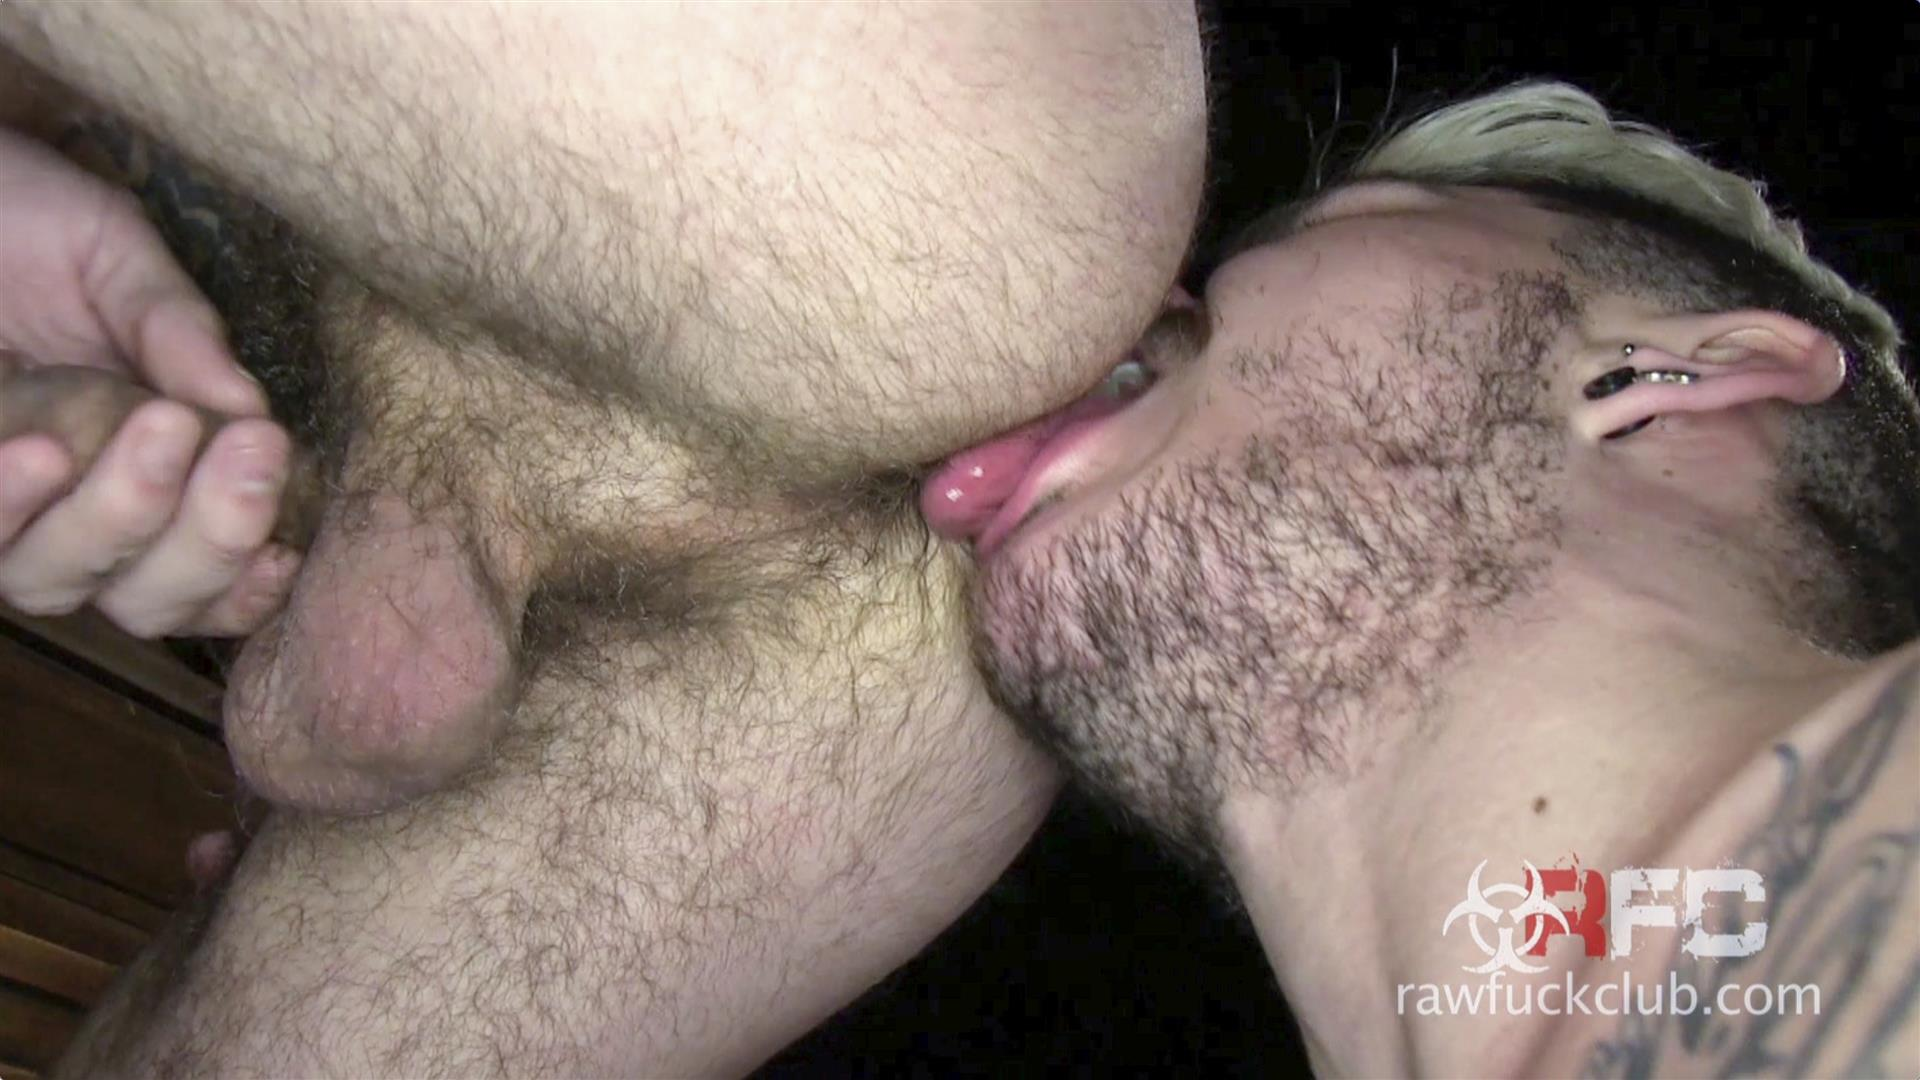 Raw-Fuck-Club-Tristan-Mathews-and-Luke-Harding-Scruffy-Guys-Having-Bareback-Sex-Amateur-Gay-Porn-05 Scruffy Tristan Mathews Gets A Bareback Breeding And Facial